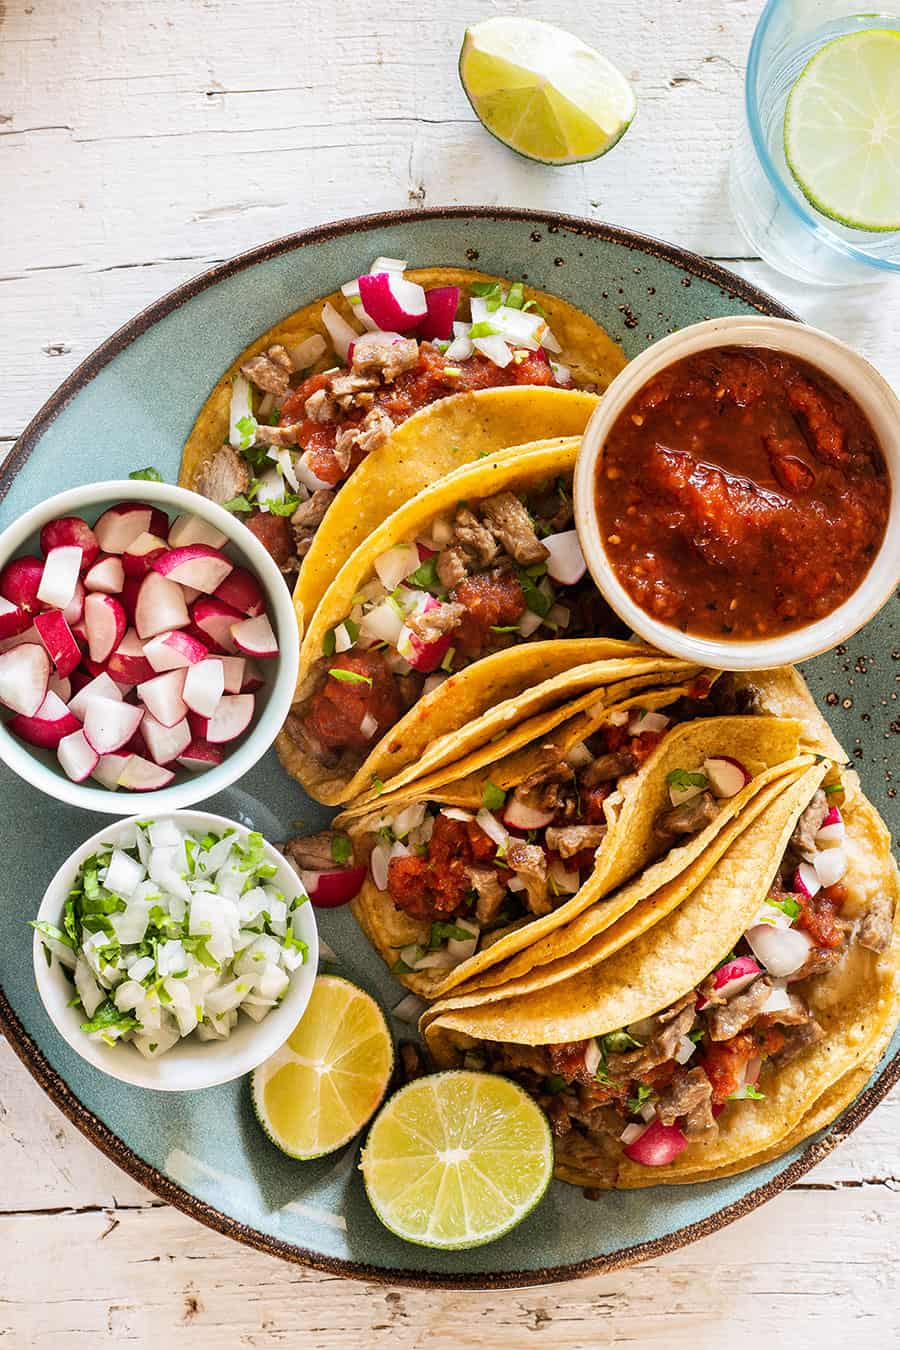 Steak tacos served on a turquoise plate with various toppings.